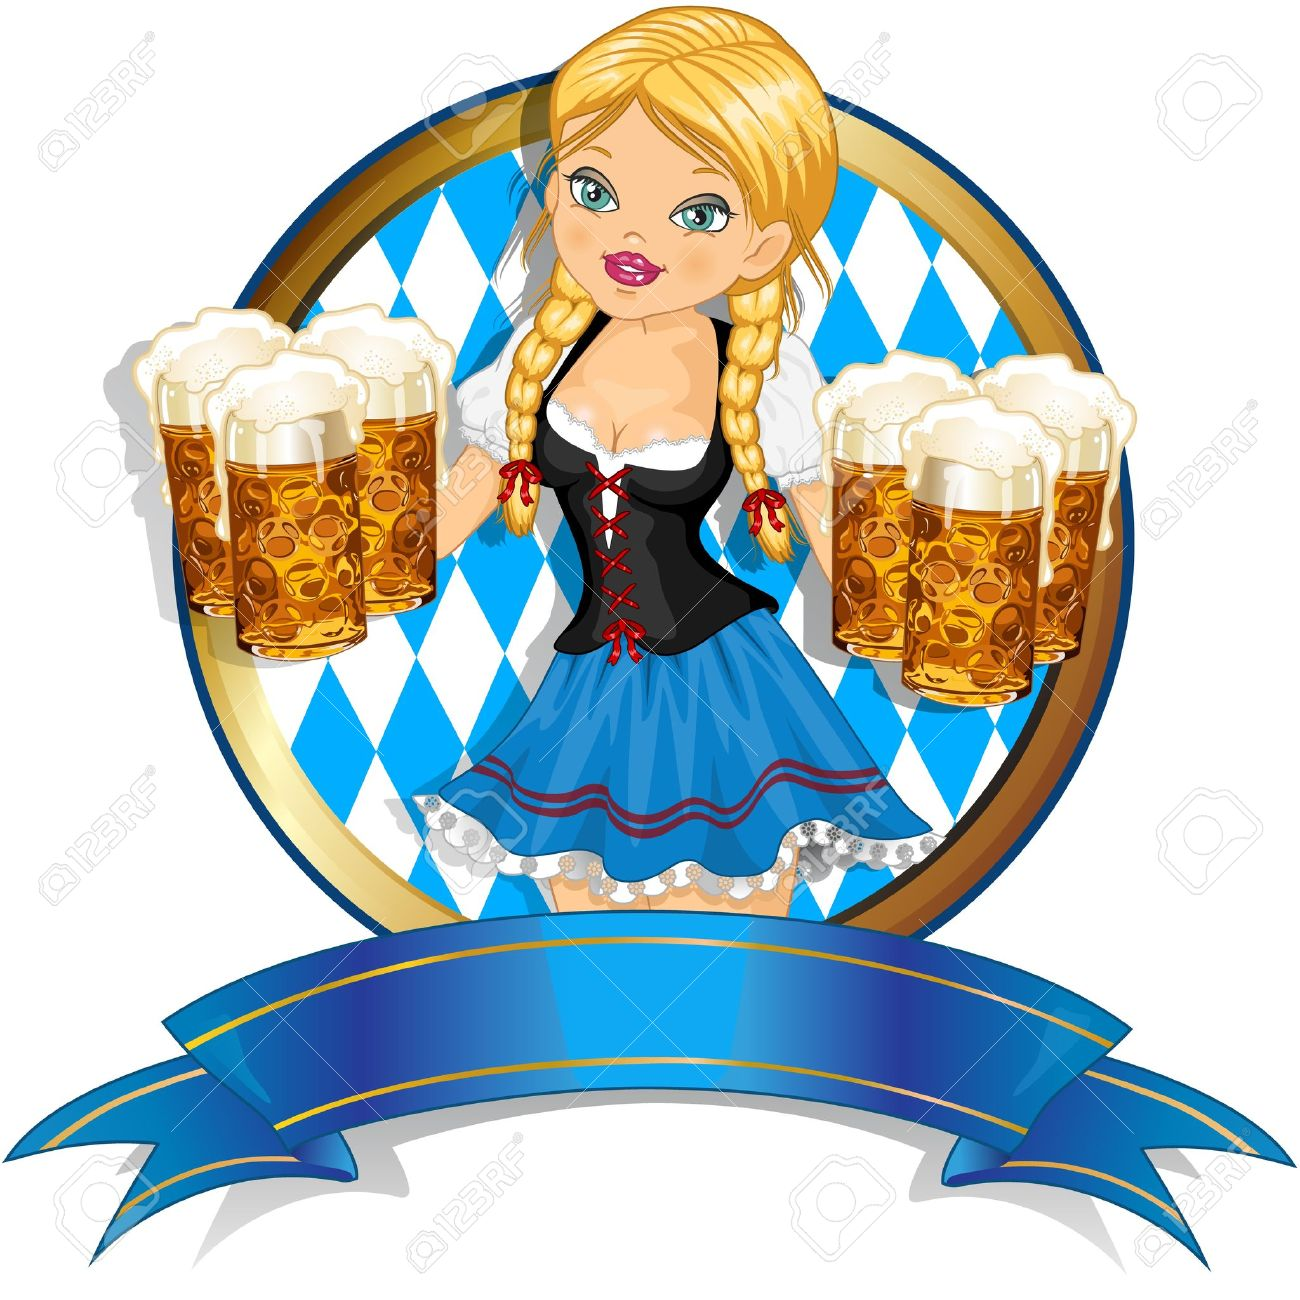 Bavaria clipart #11, Download drawings